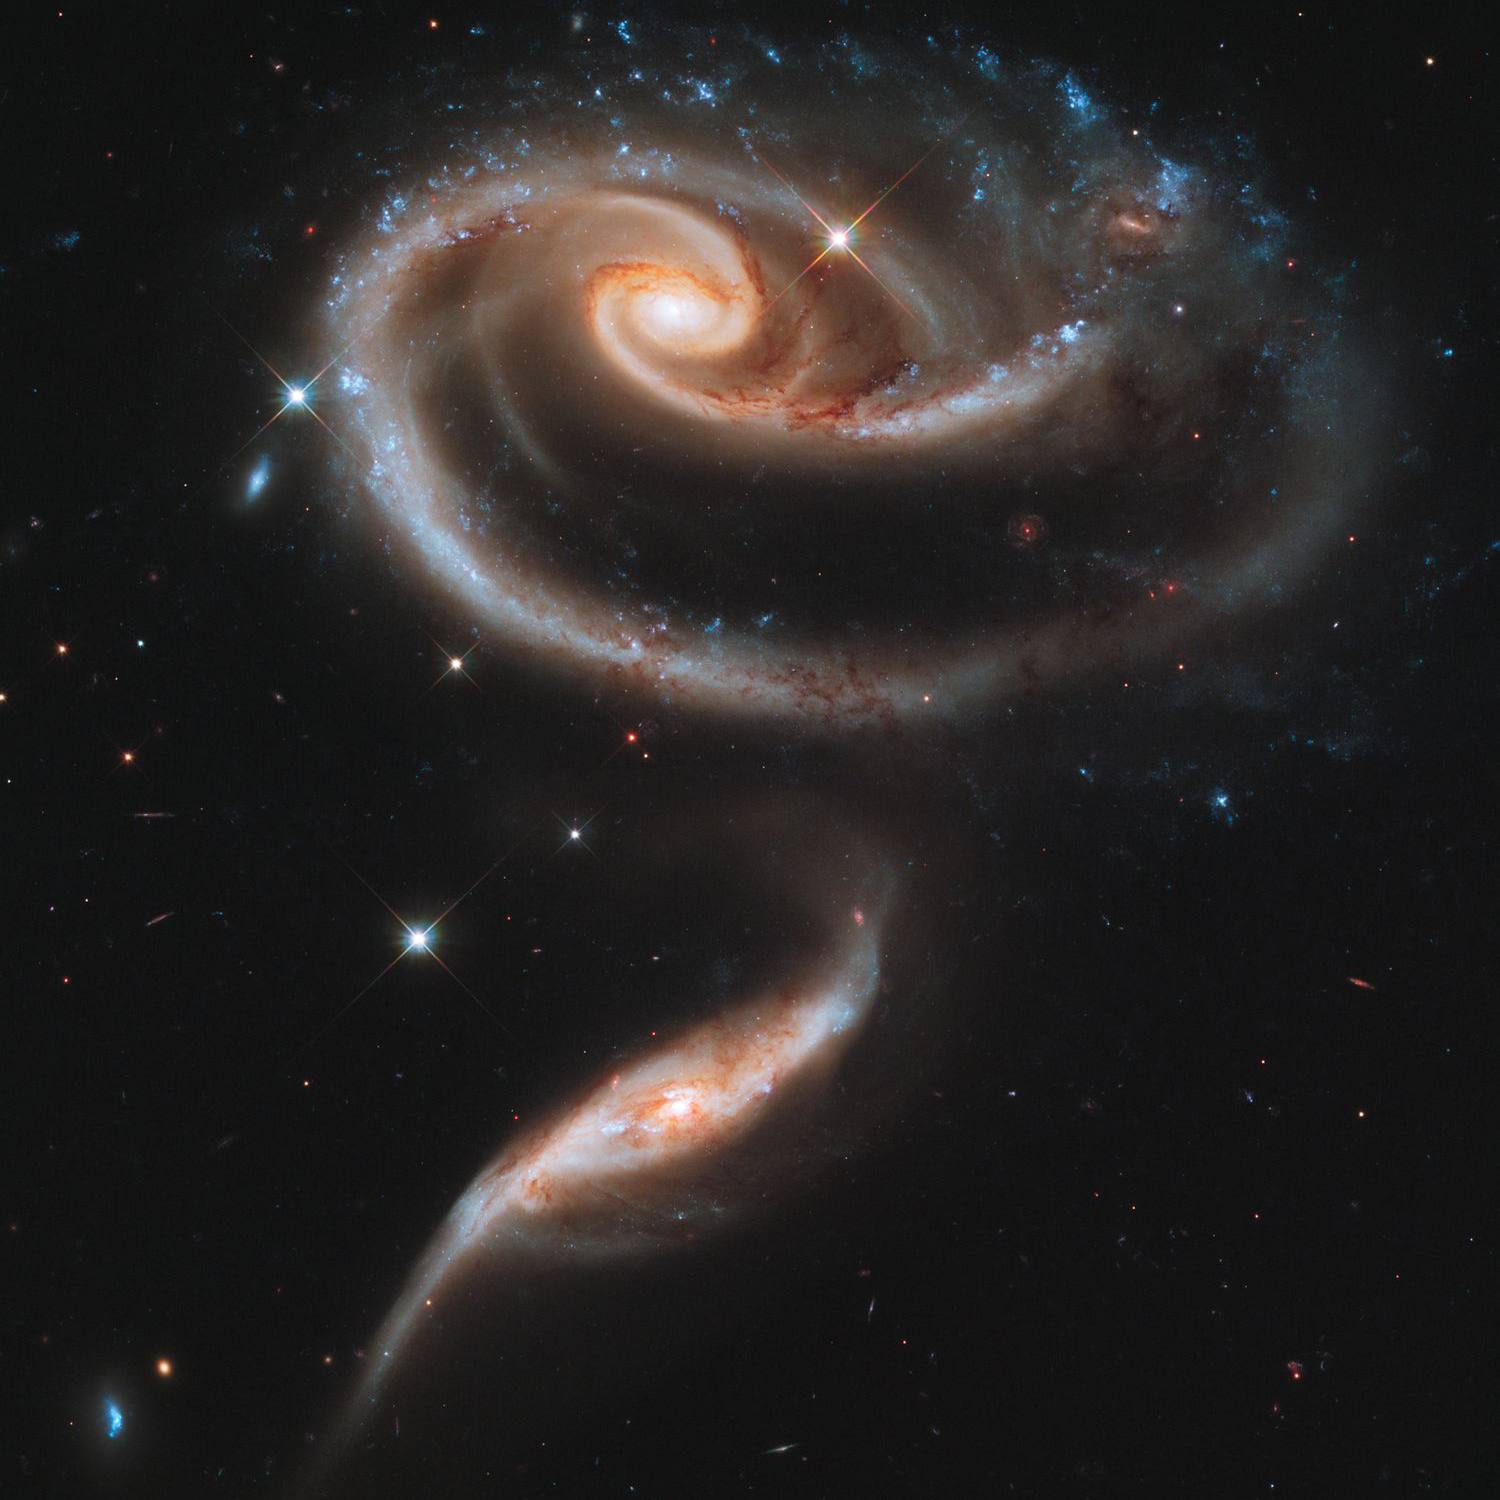 hubble rose galaxies